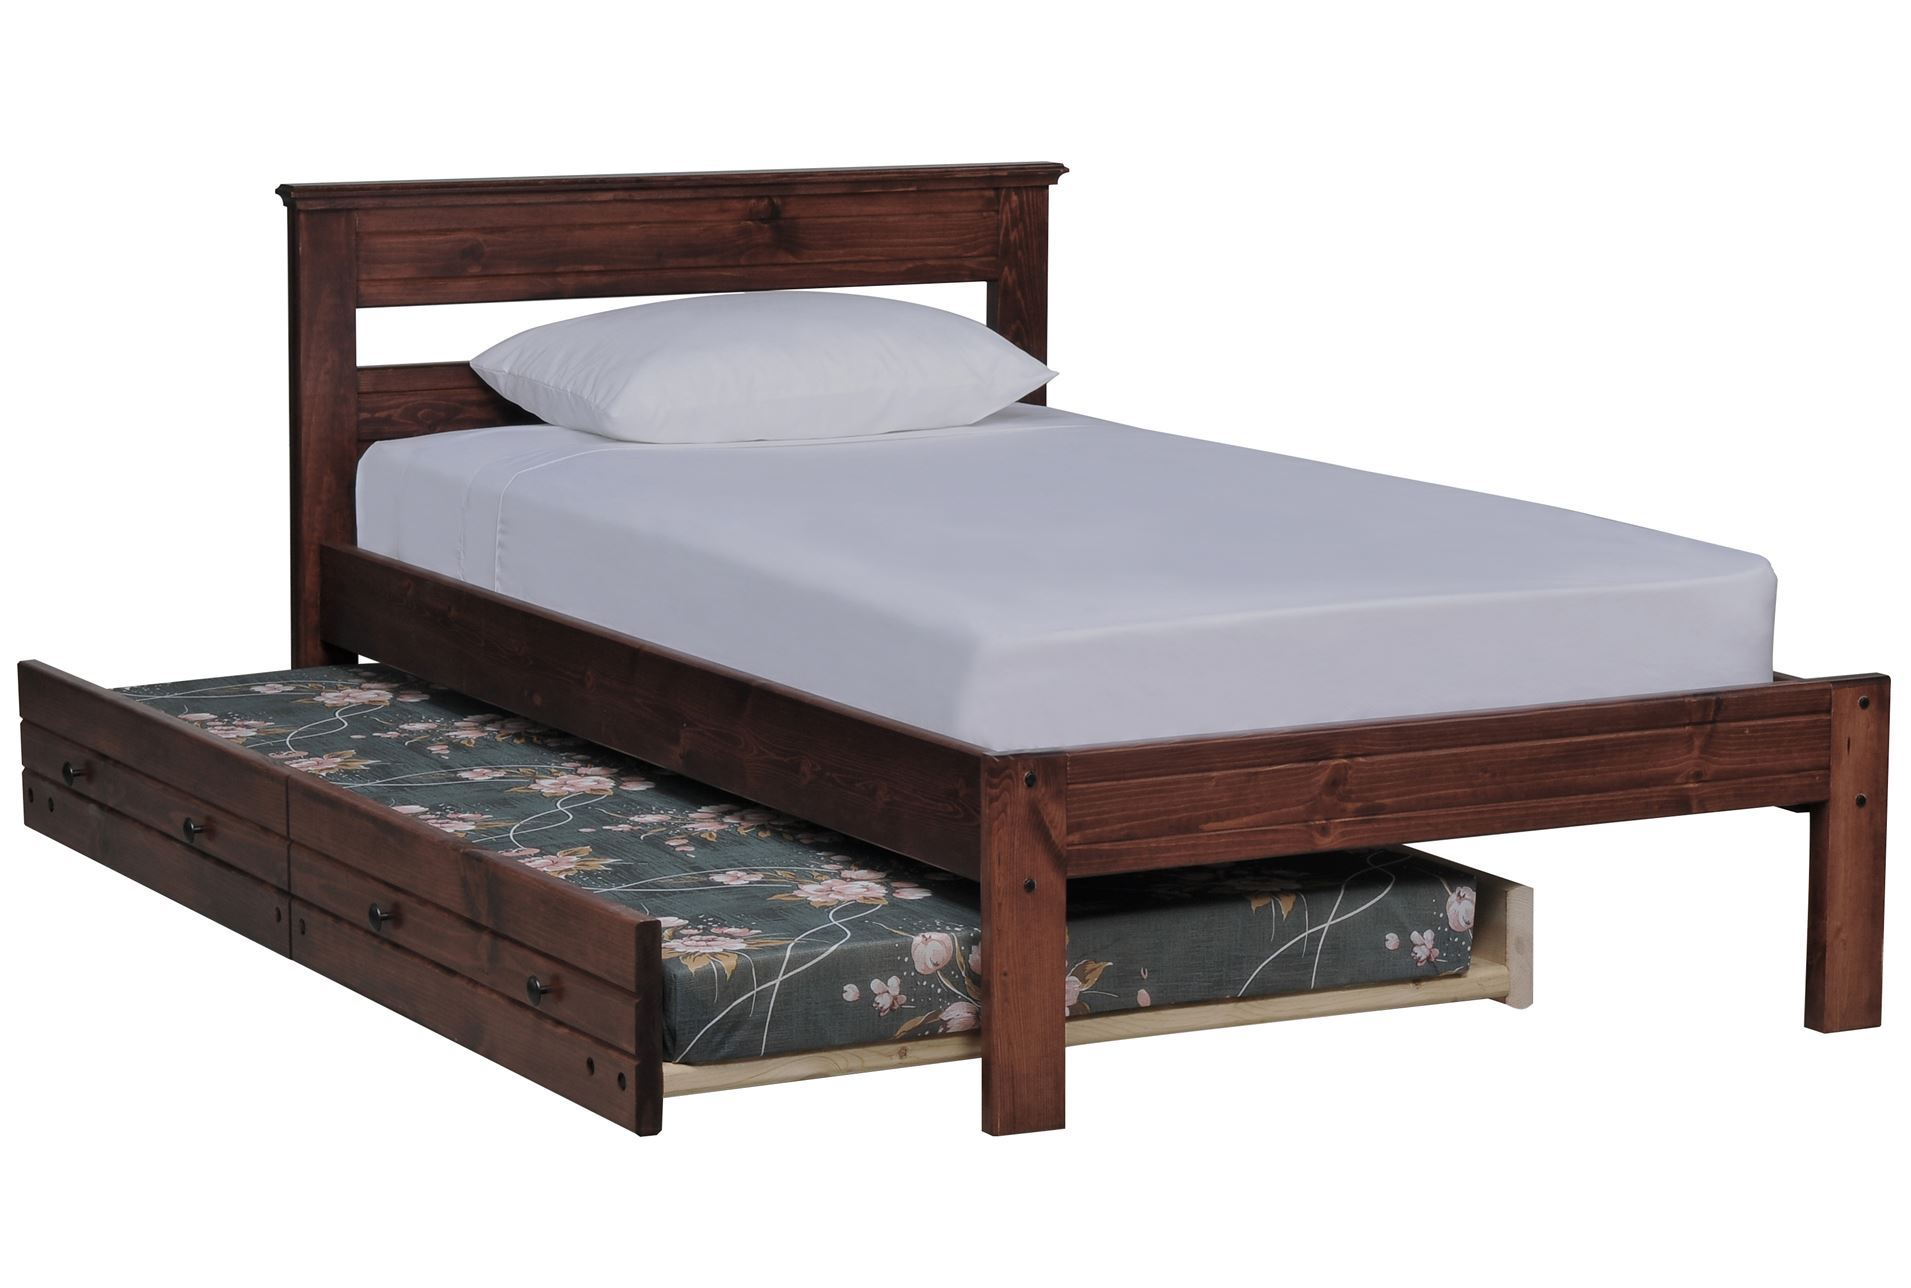 sedona twin platform bed w trundle mattress living spaces. Black Bedroom Furniture Sets. Home Design Ideas